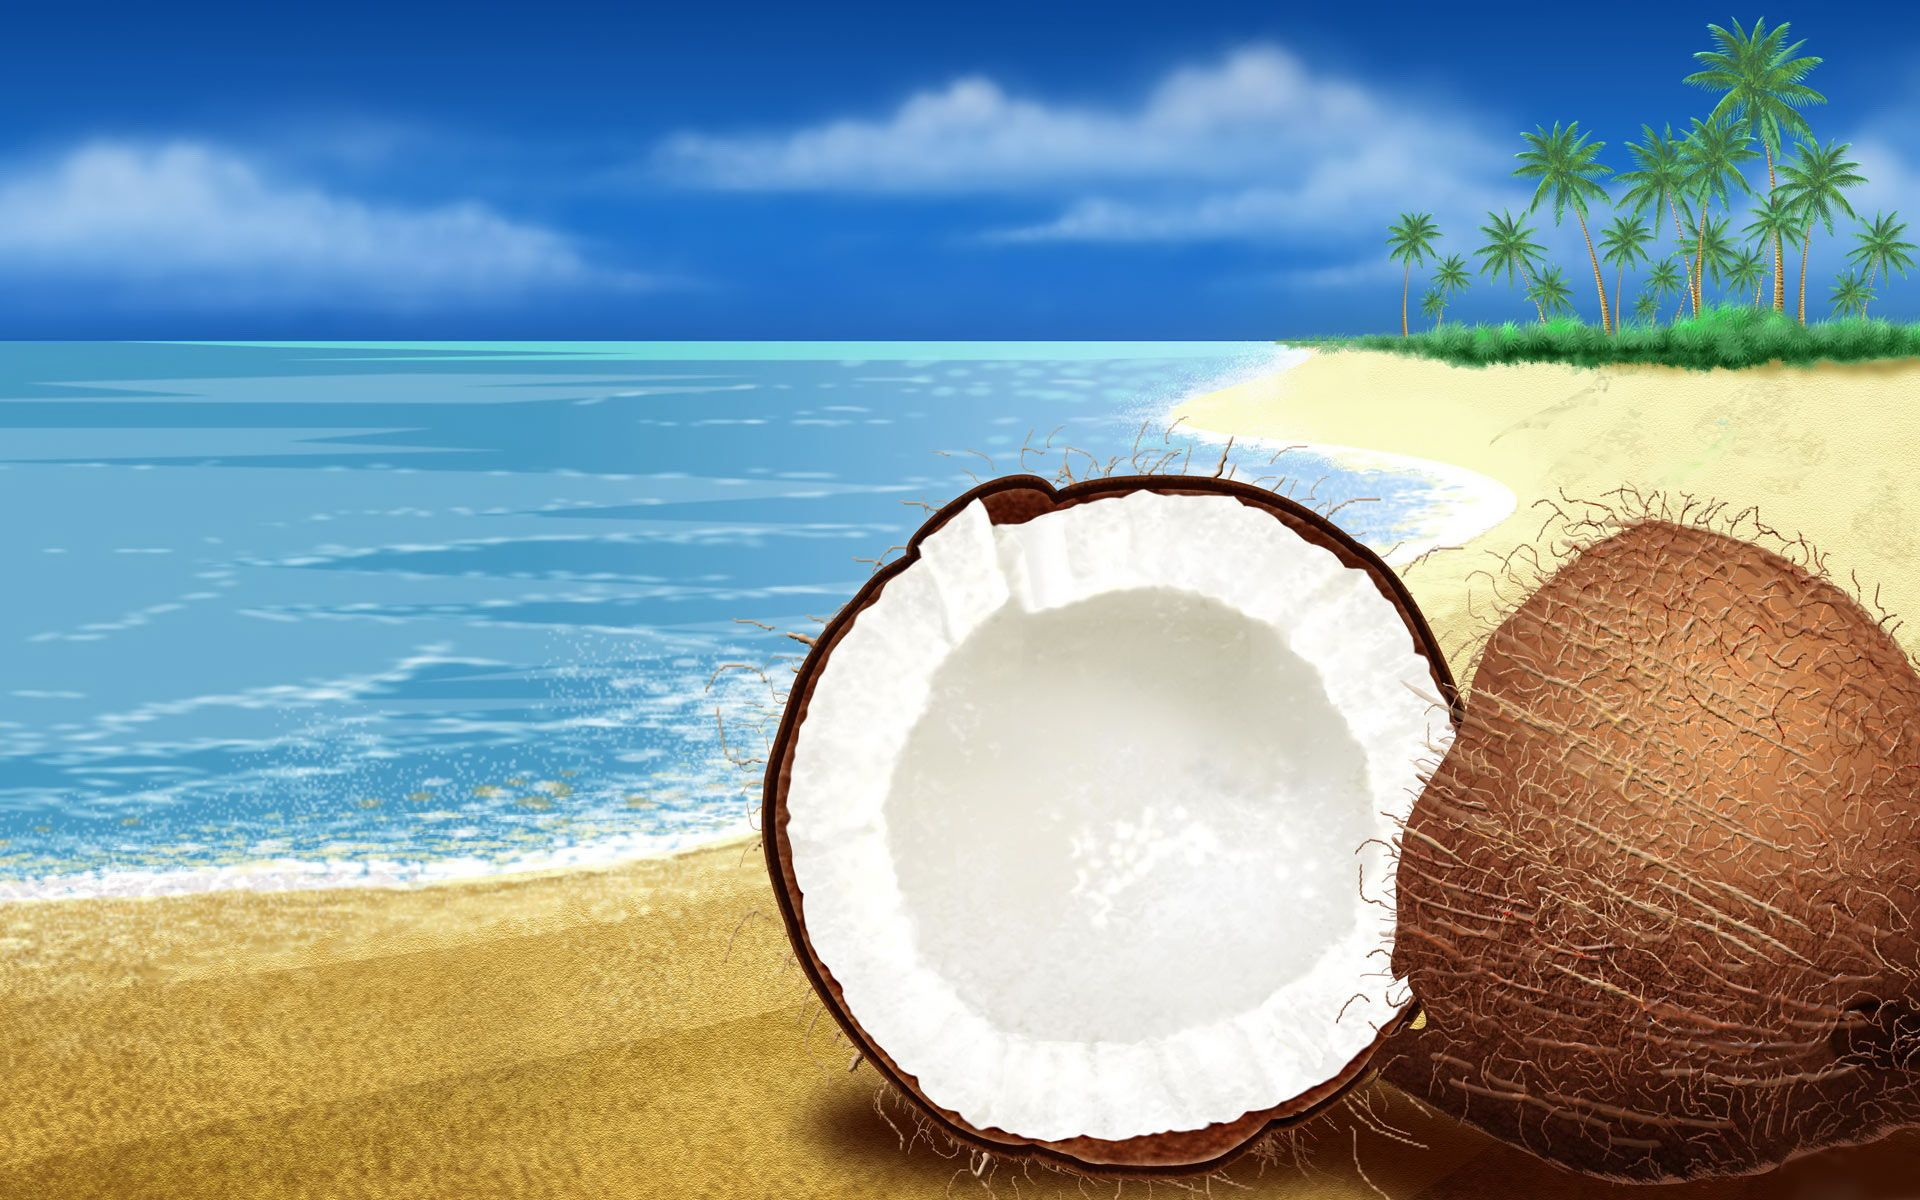 Free Desktop Free Windows 7 Backgrounds High Quality Wallpapers Wallpaper Desktop Coconuts Beach Coconut Beach Wallpaper